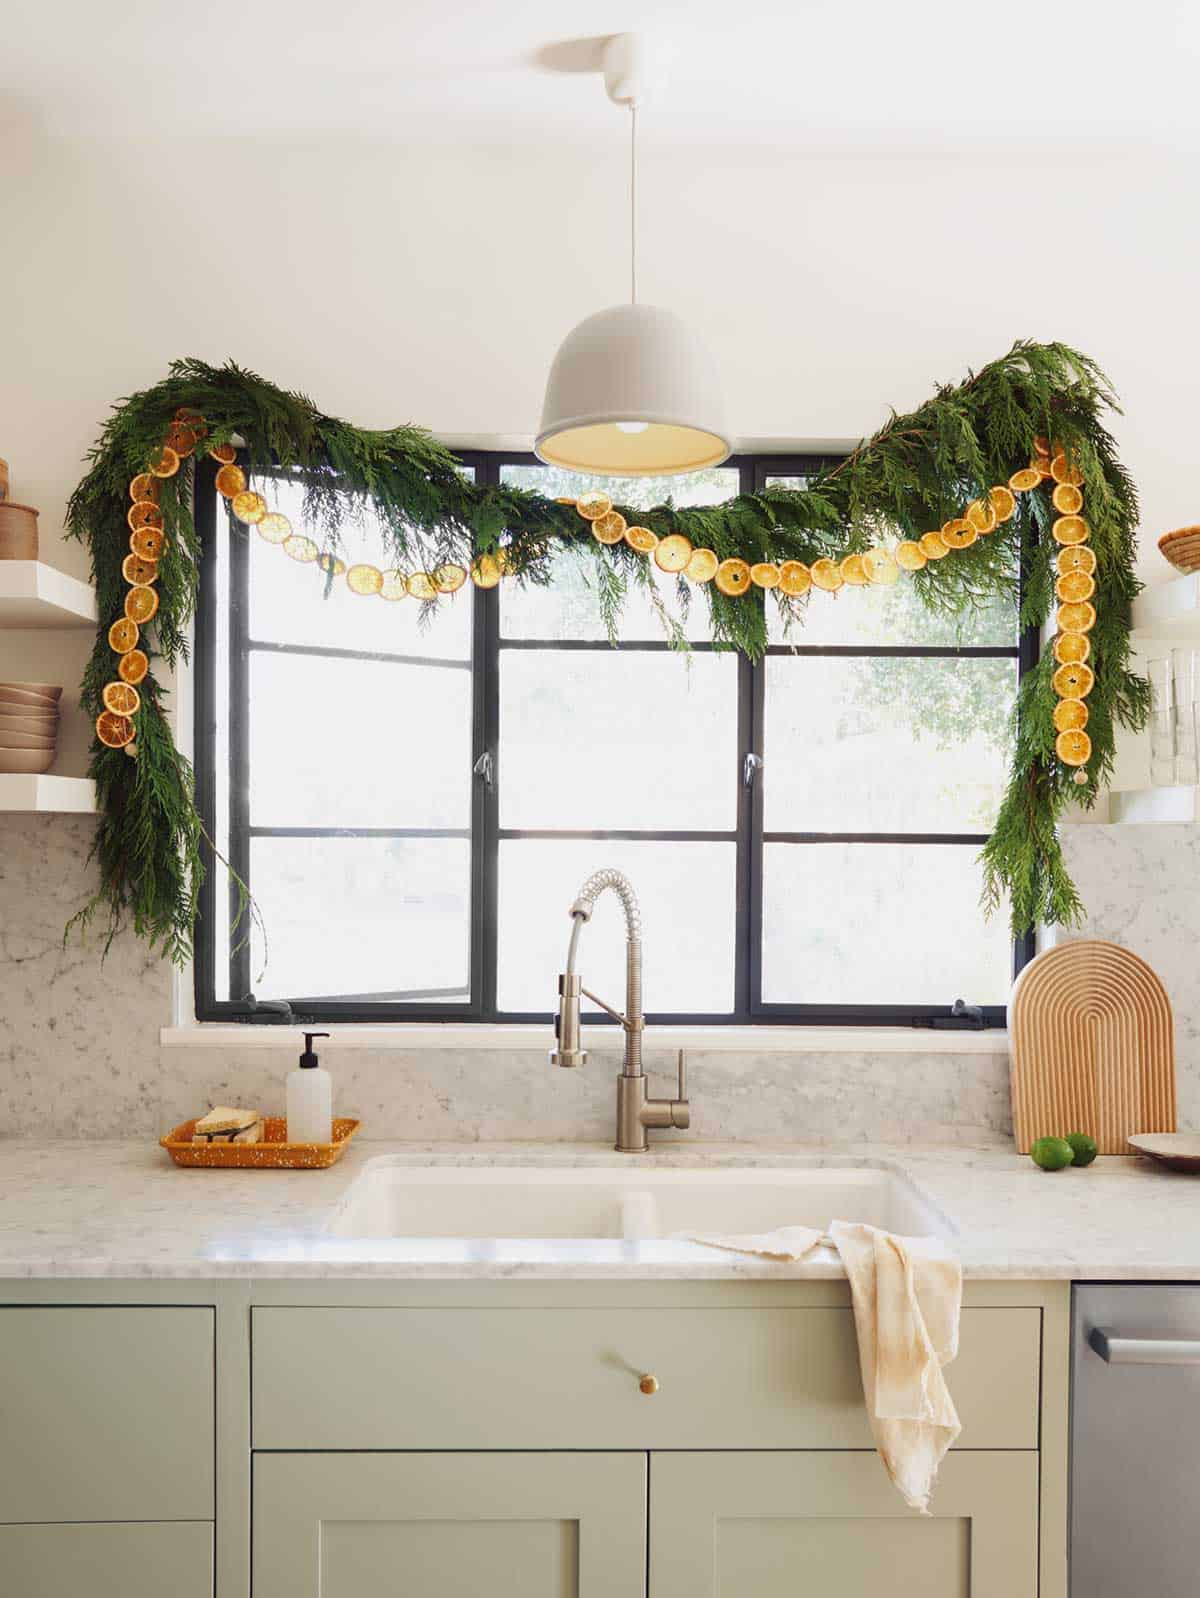 Dehydrated citrus garland above a kitchen sink.